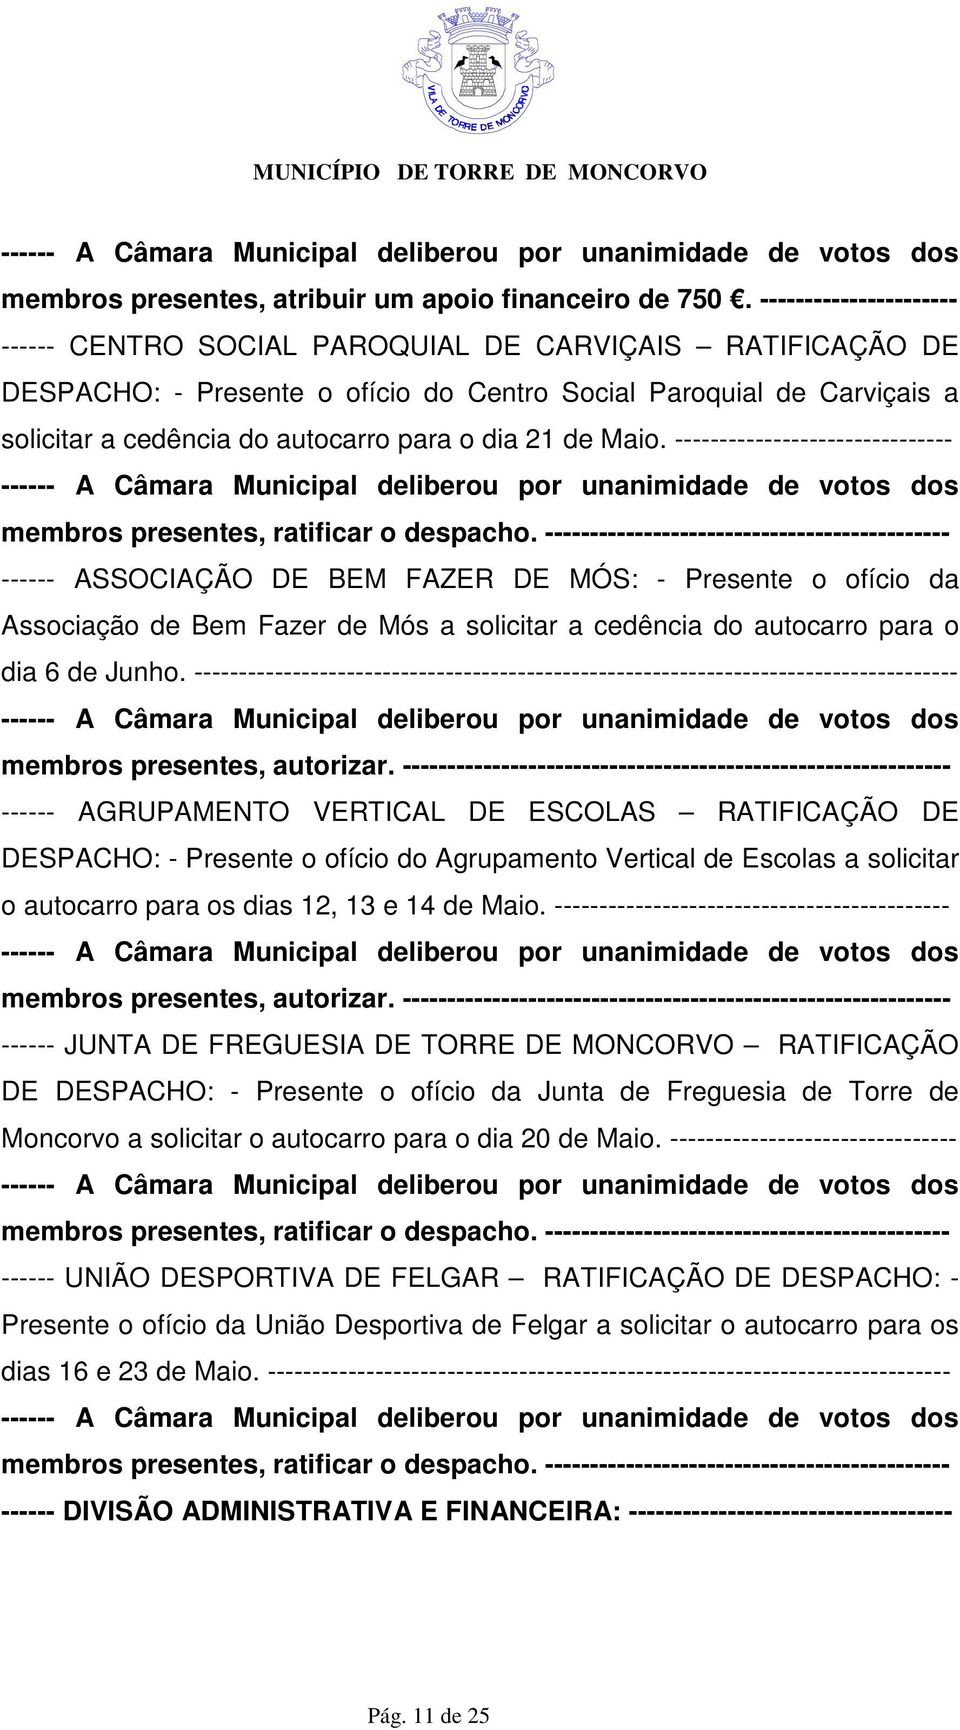 21 de Maio. ------------------------------- membros presentes, ratificar o despacho.